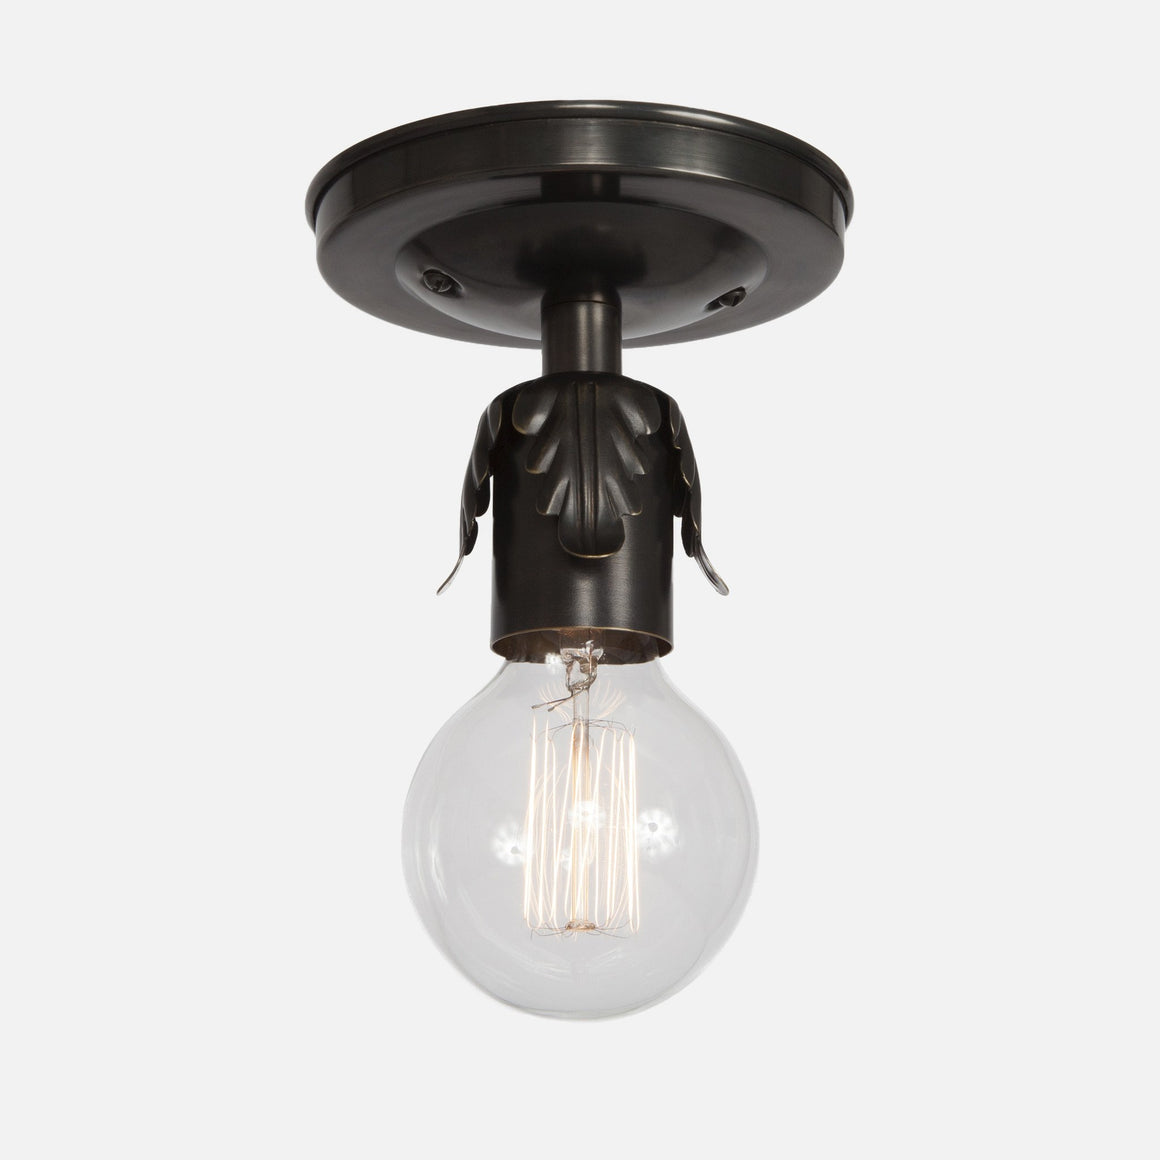 Fleurette Flush Mount Ceiling Light - Ebonized Brass